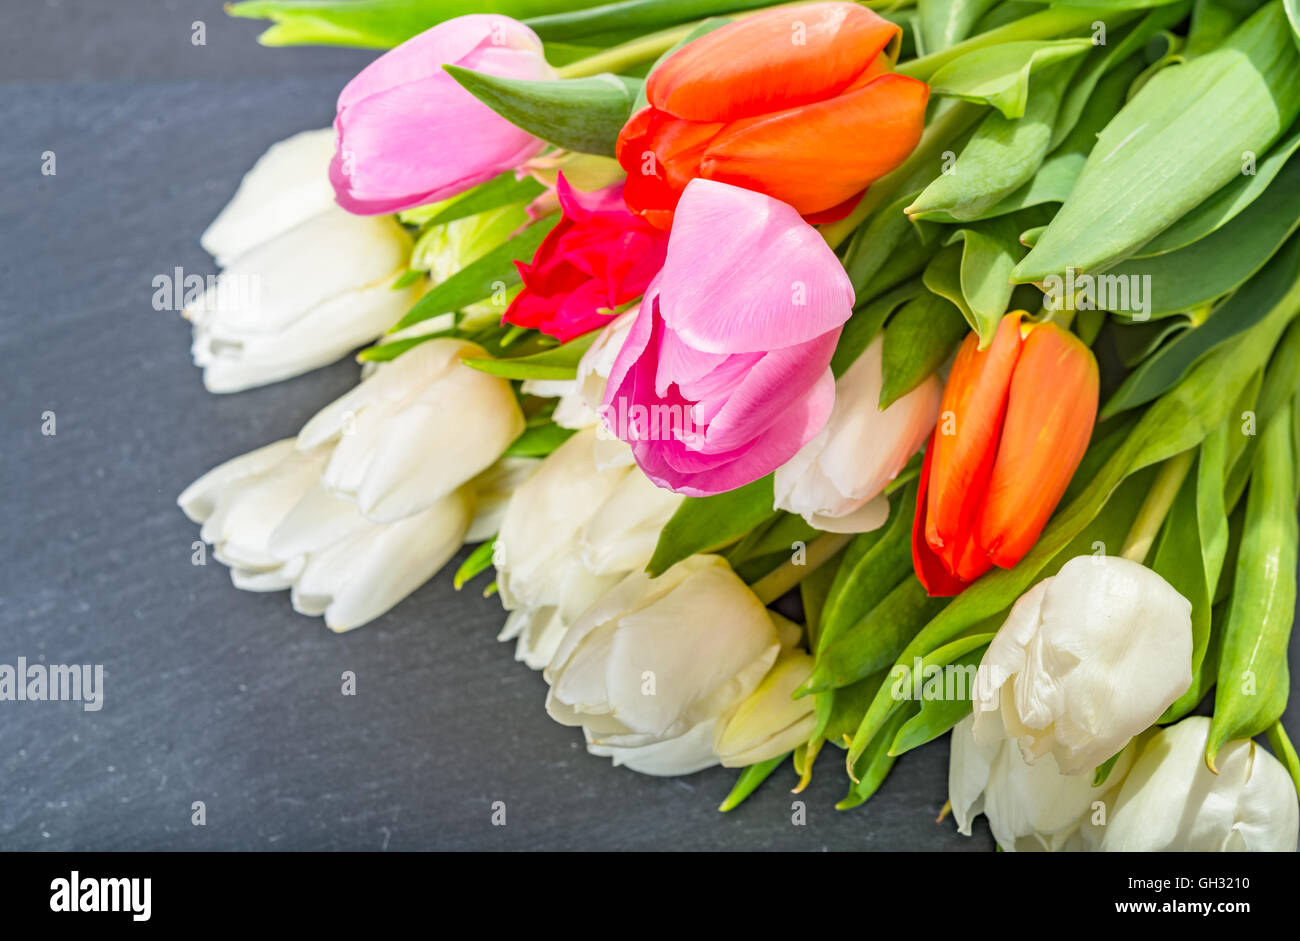 Anniversary colorful tulip flower bouquet on grey background for anniversary colorful tulip flower bouquet on grey background for birthday mothers day or valentines day gift flat lay view izmirmasajfo Image collections